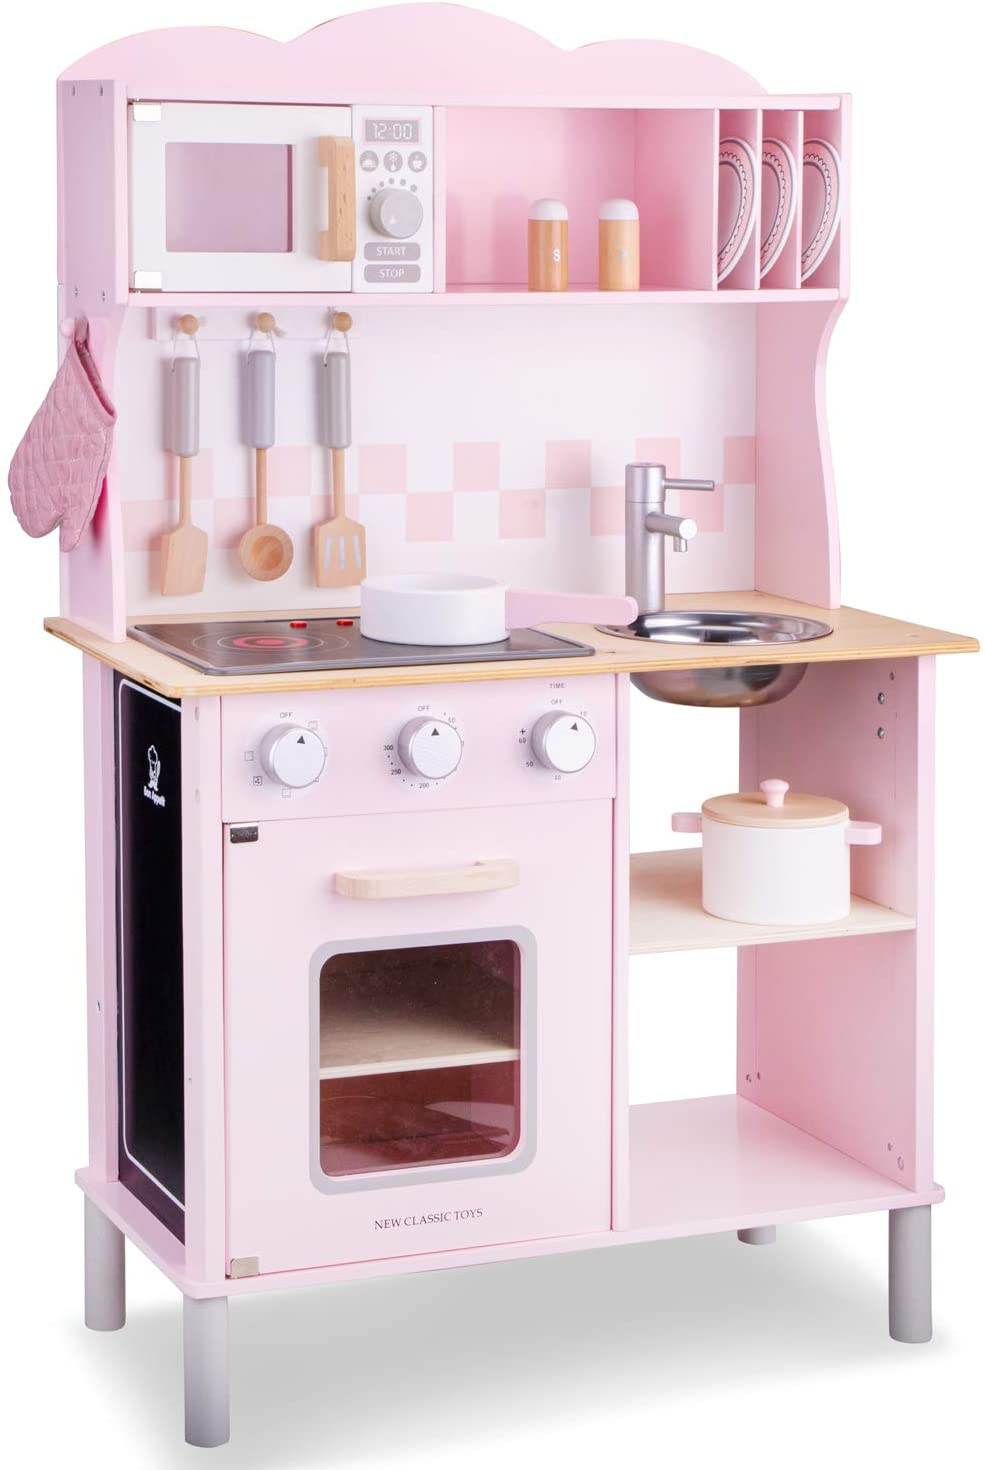 New Classic Toys 11067 Kitchenette-Modern-Electric Cooking-Pink